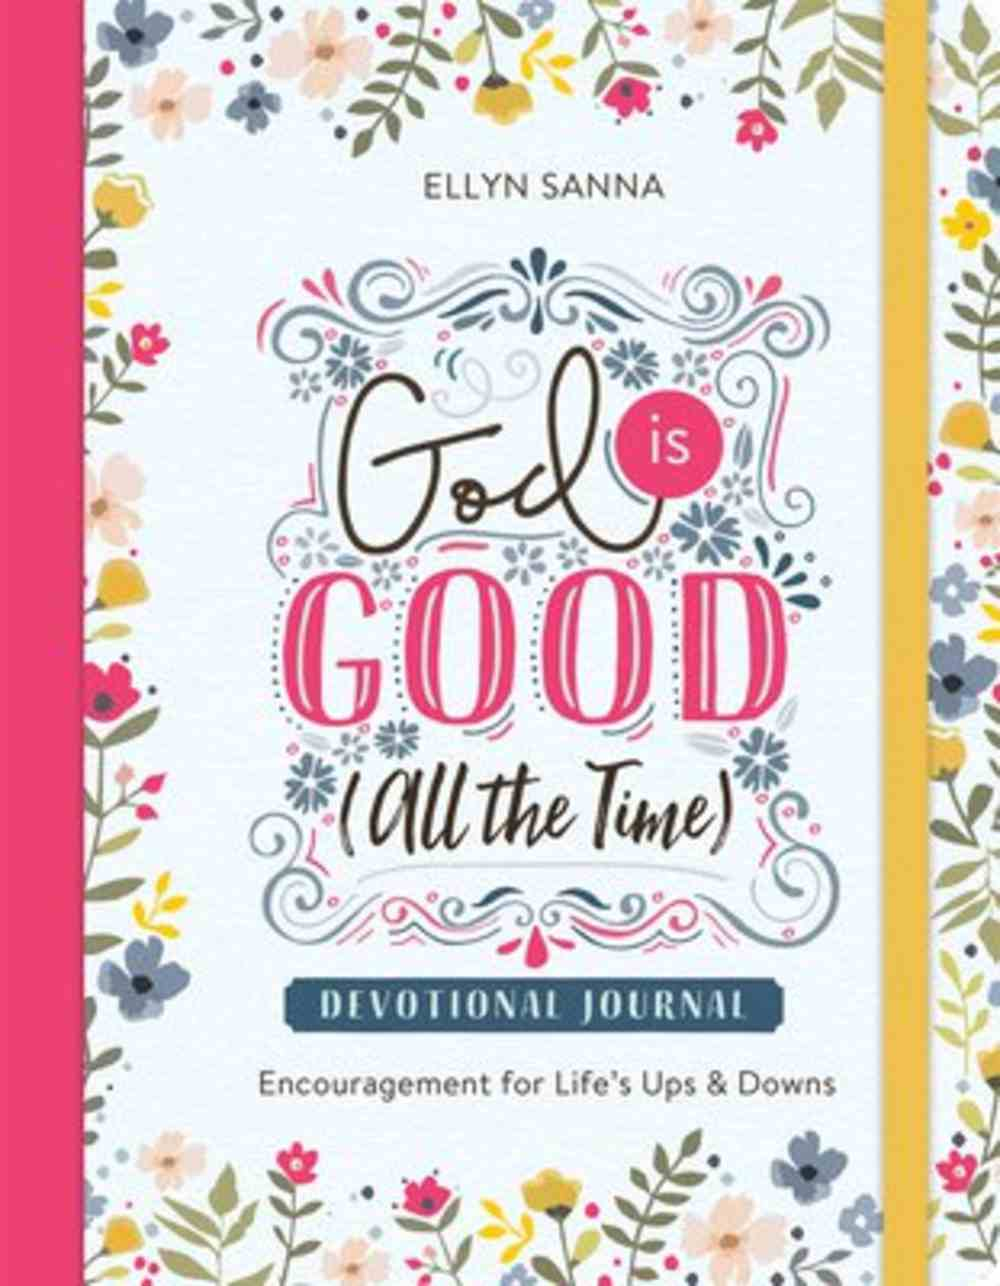 God is Good Devotional Journal: Encouragement For Life's Ups and Downs (All The Time) Paperback